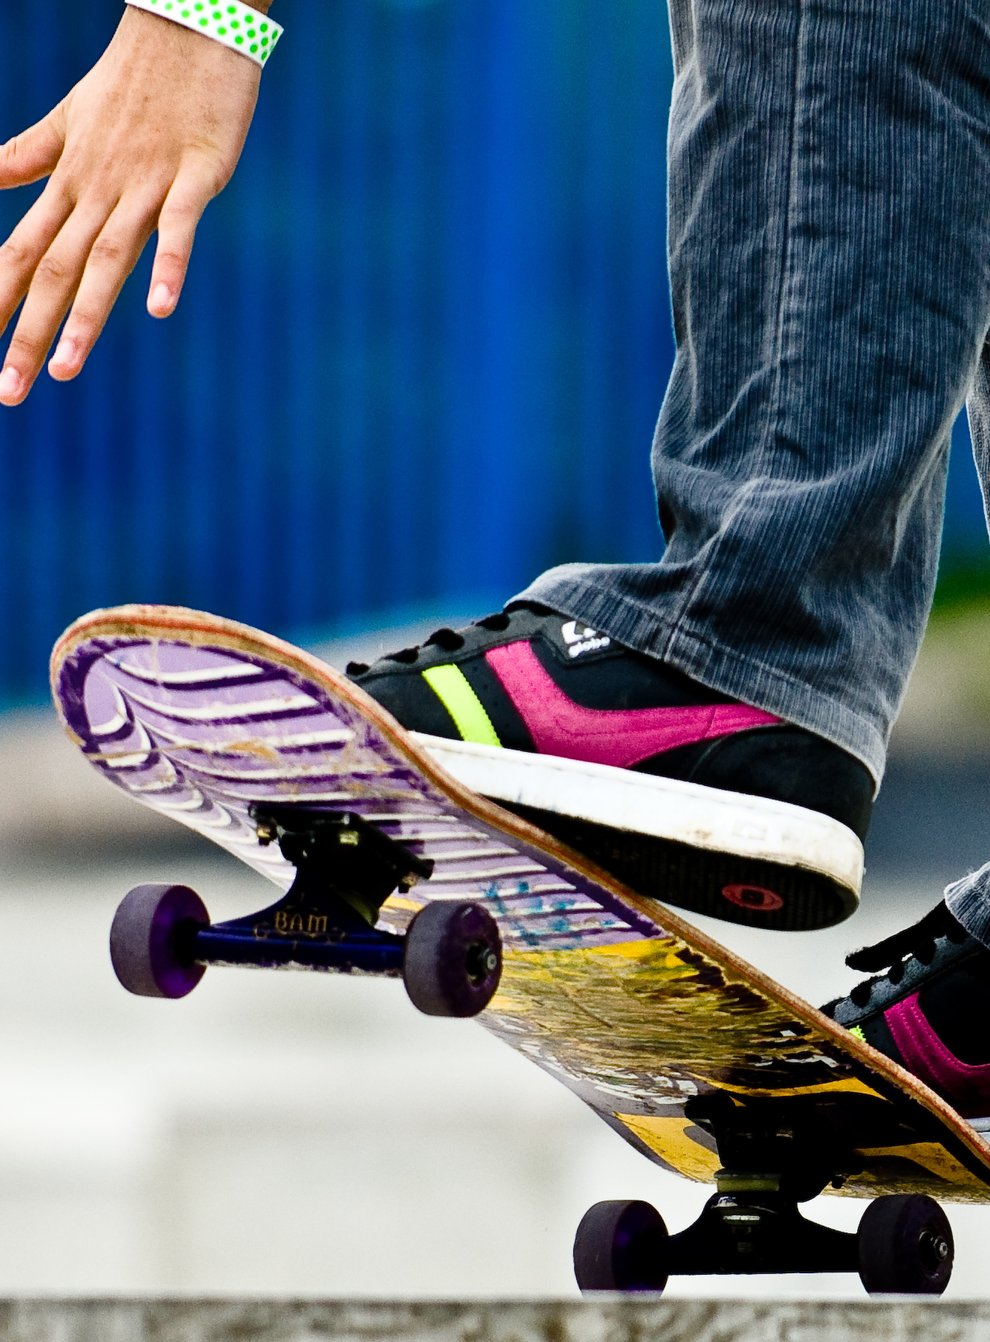 Victor Williams has been skateboarding since he was eight (Daniel Law/PA)